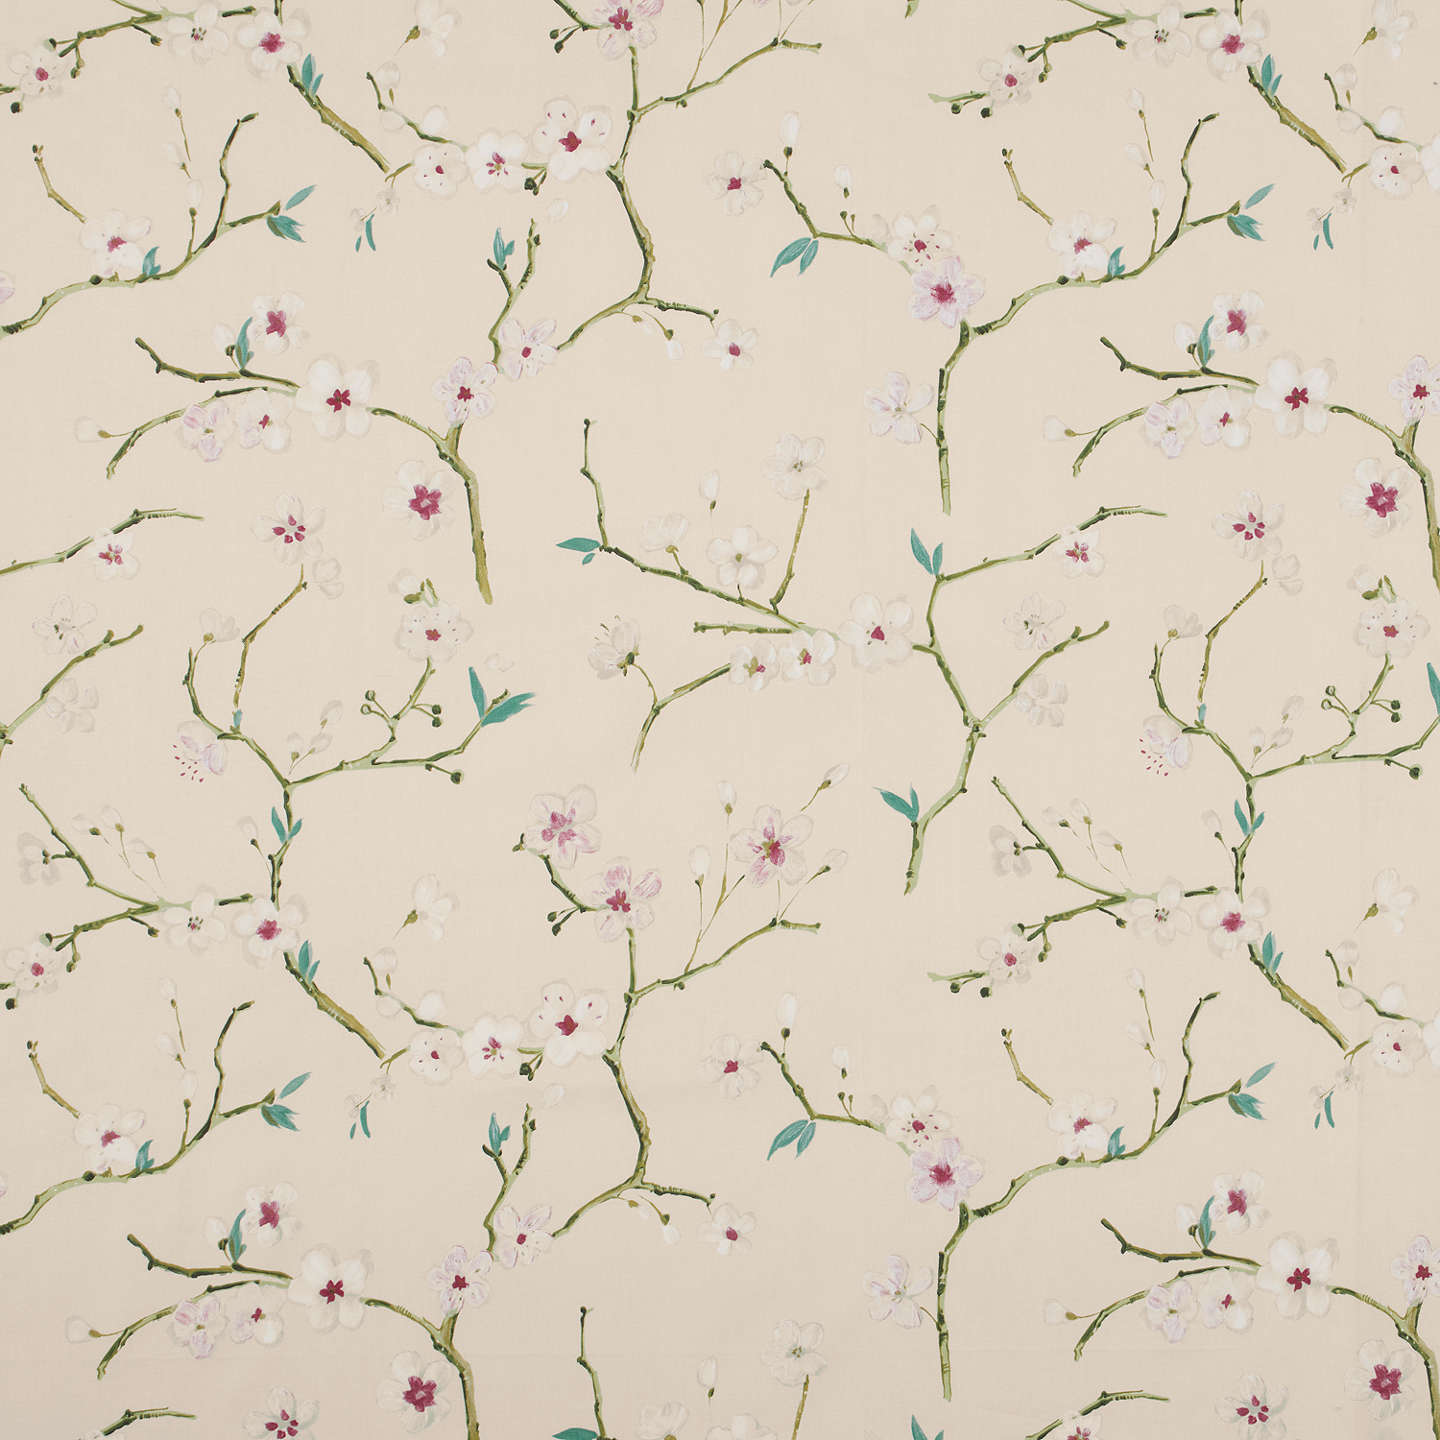 Hanami furnishing fabric pink at john lewis buyhanami furnishing fabric pink online at johnlewis gumiabroncs Image collections